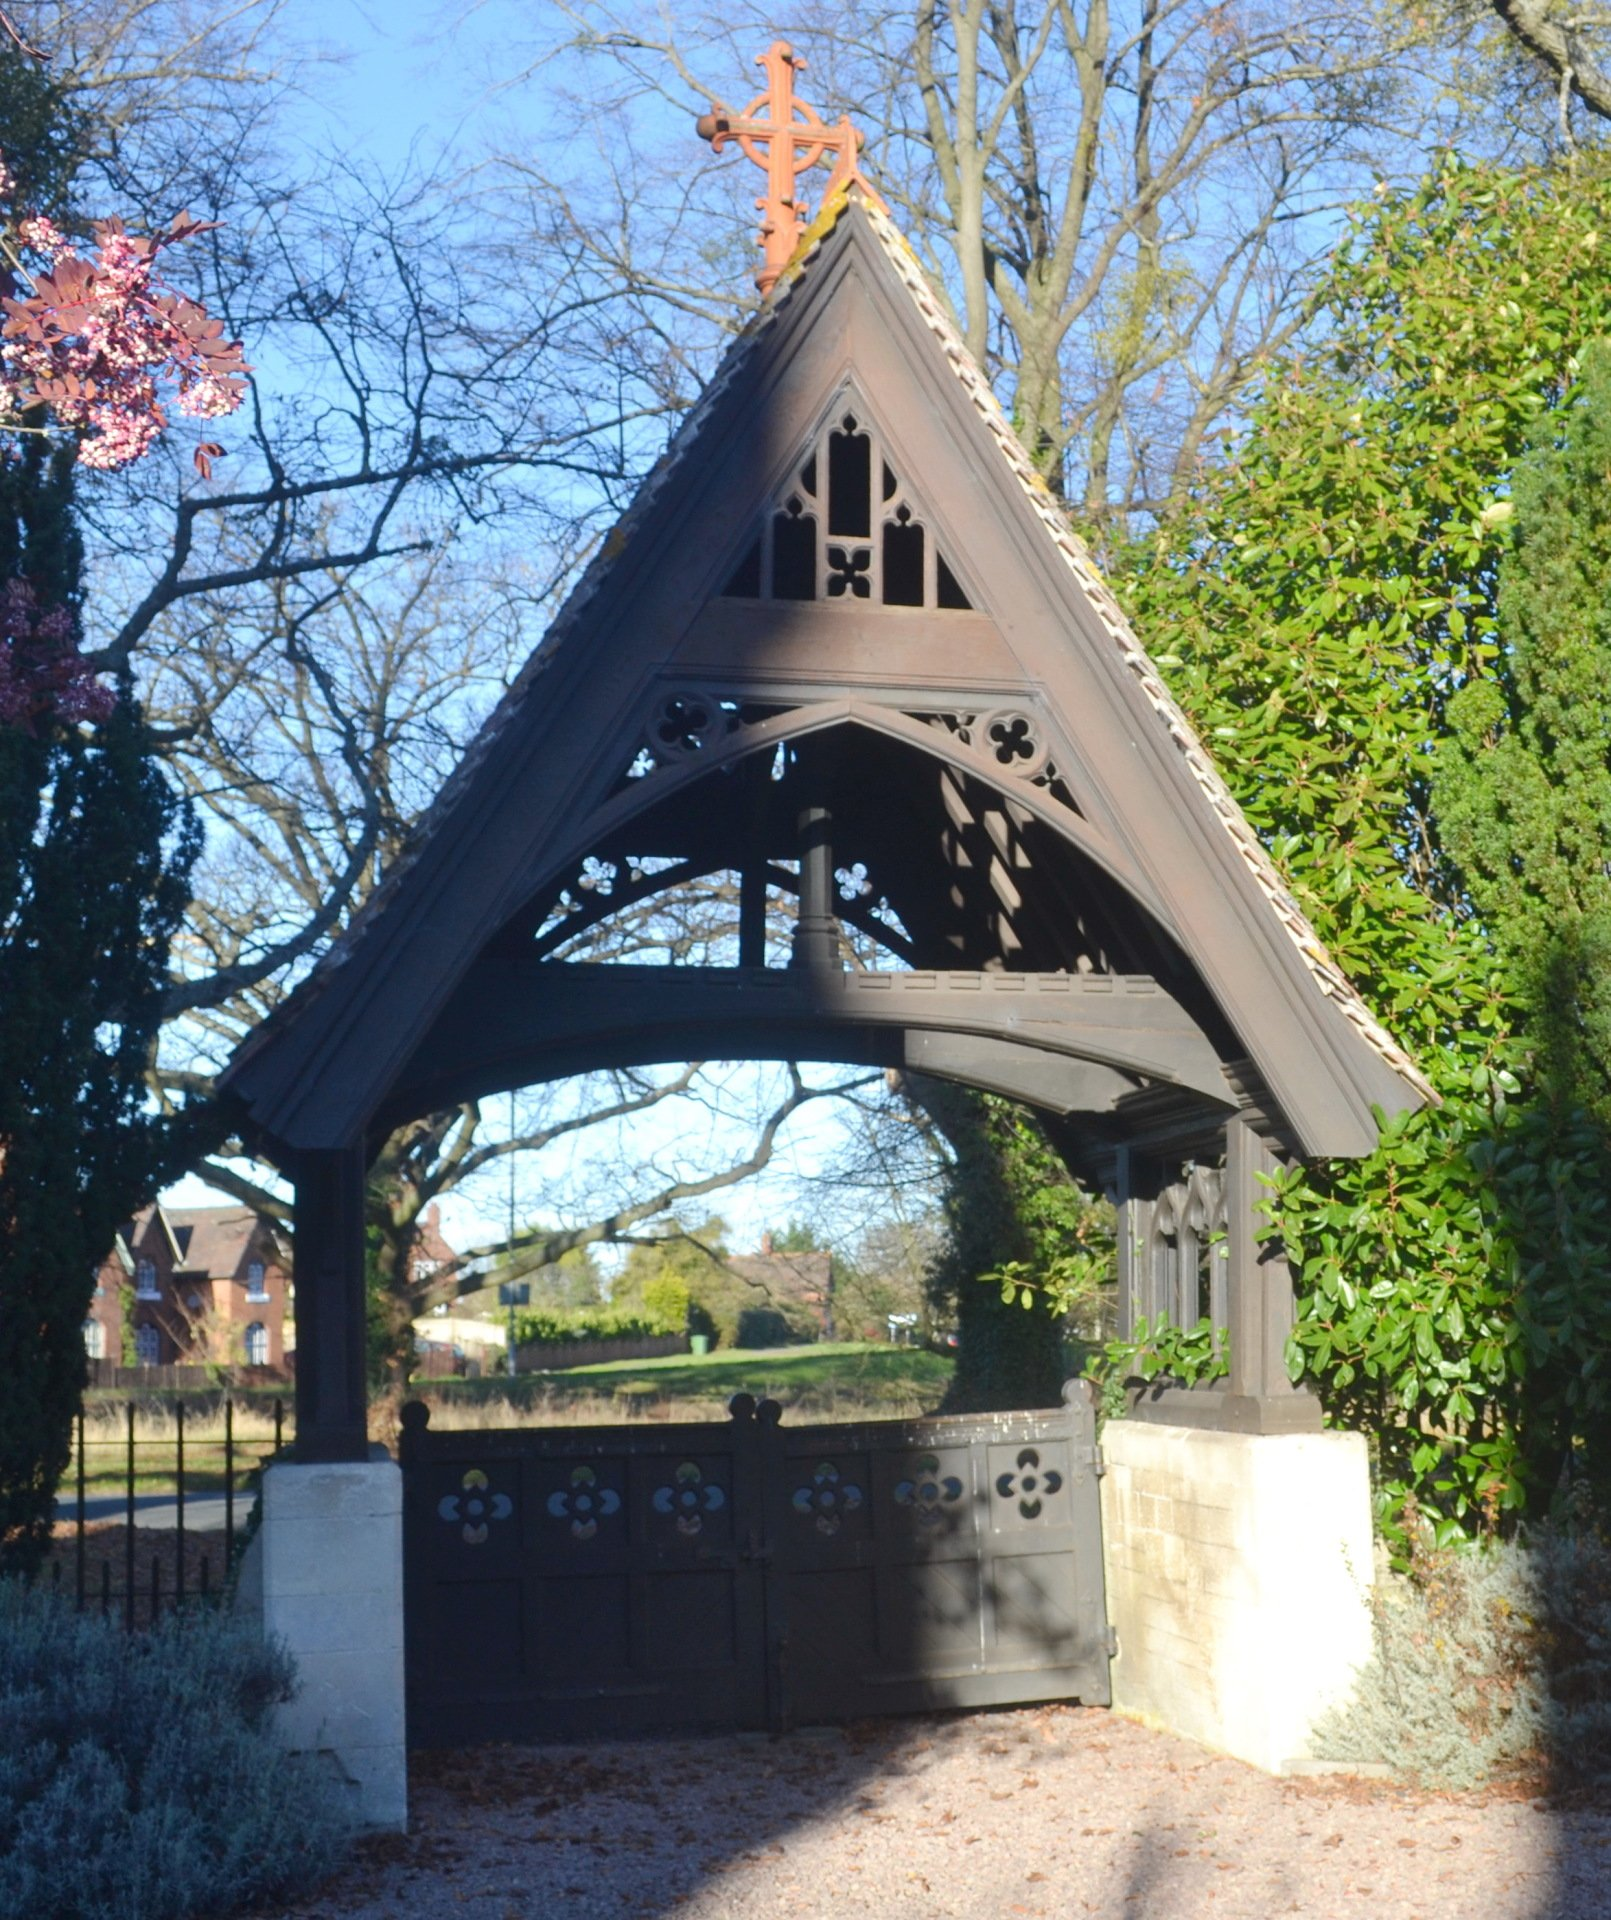 Lychgate from the church